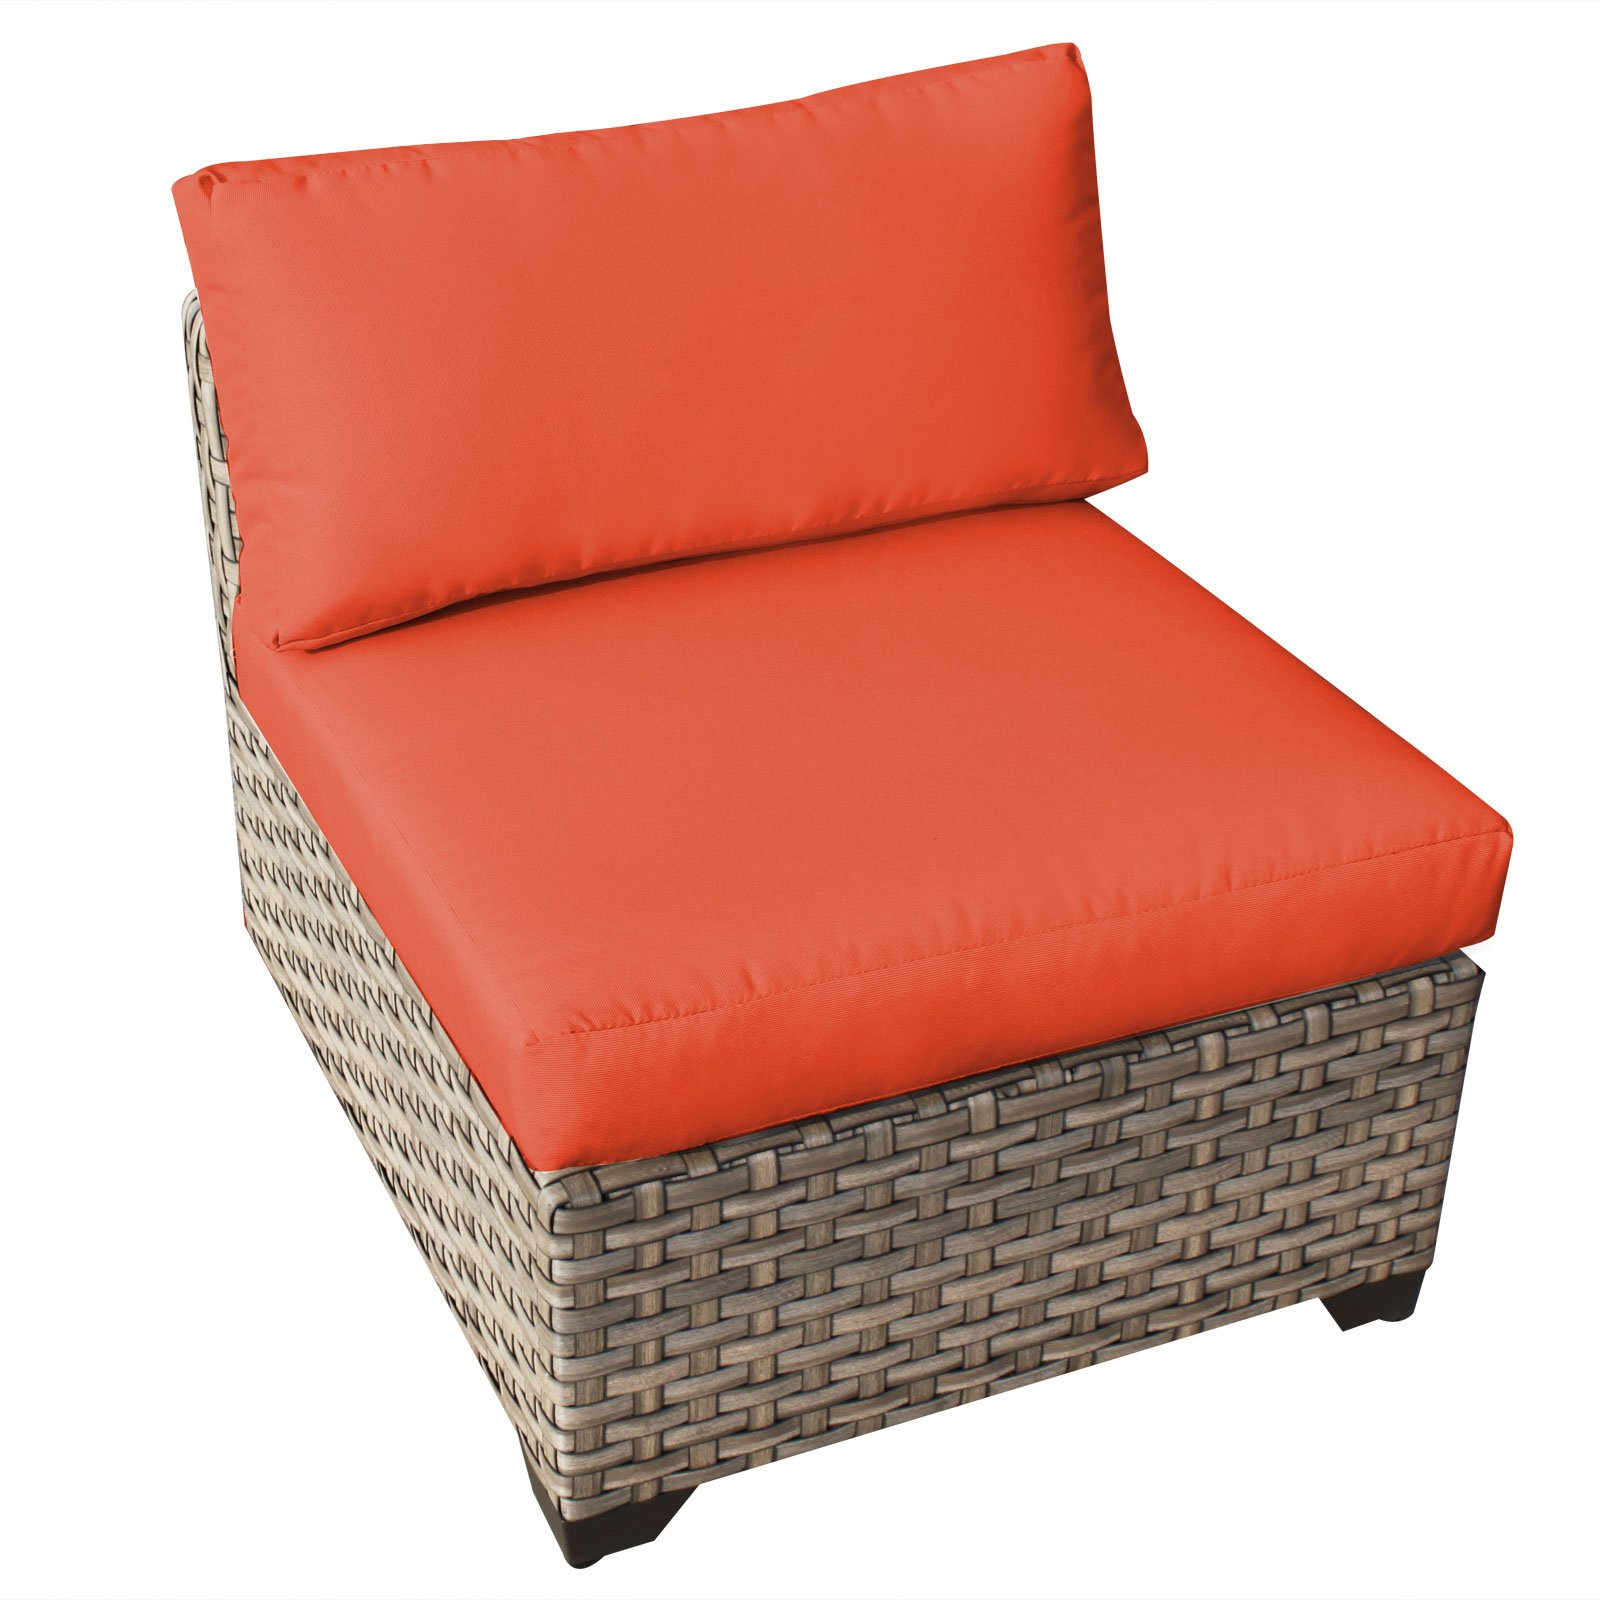 TK Classics Monterey Outdoor Middle Chair with 2 Sets of Cushion Covers